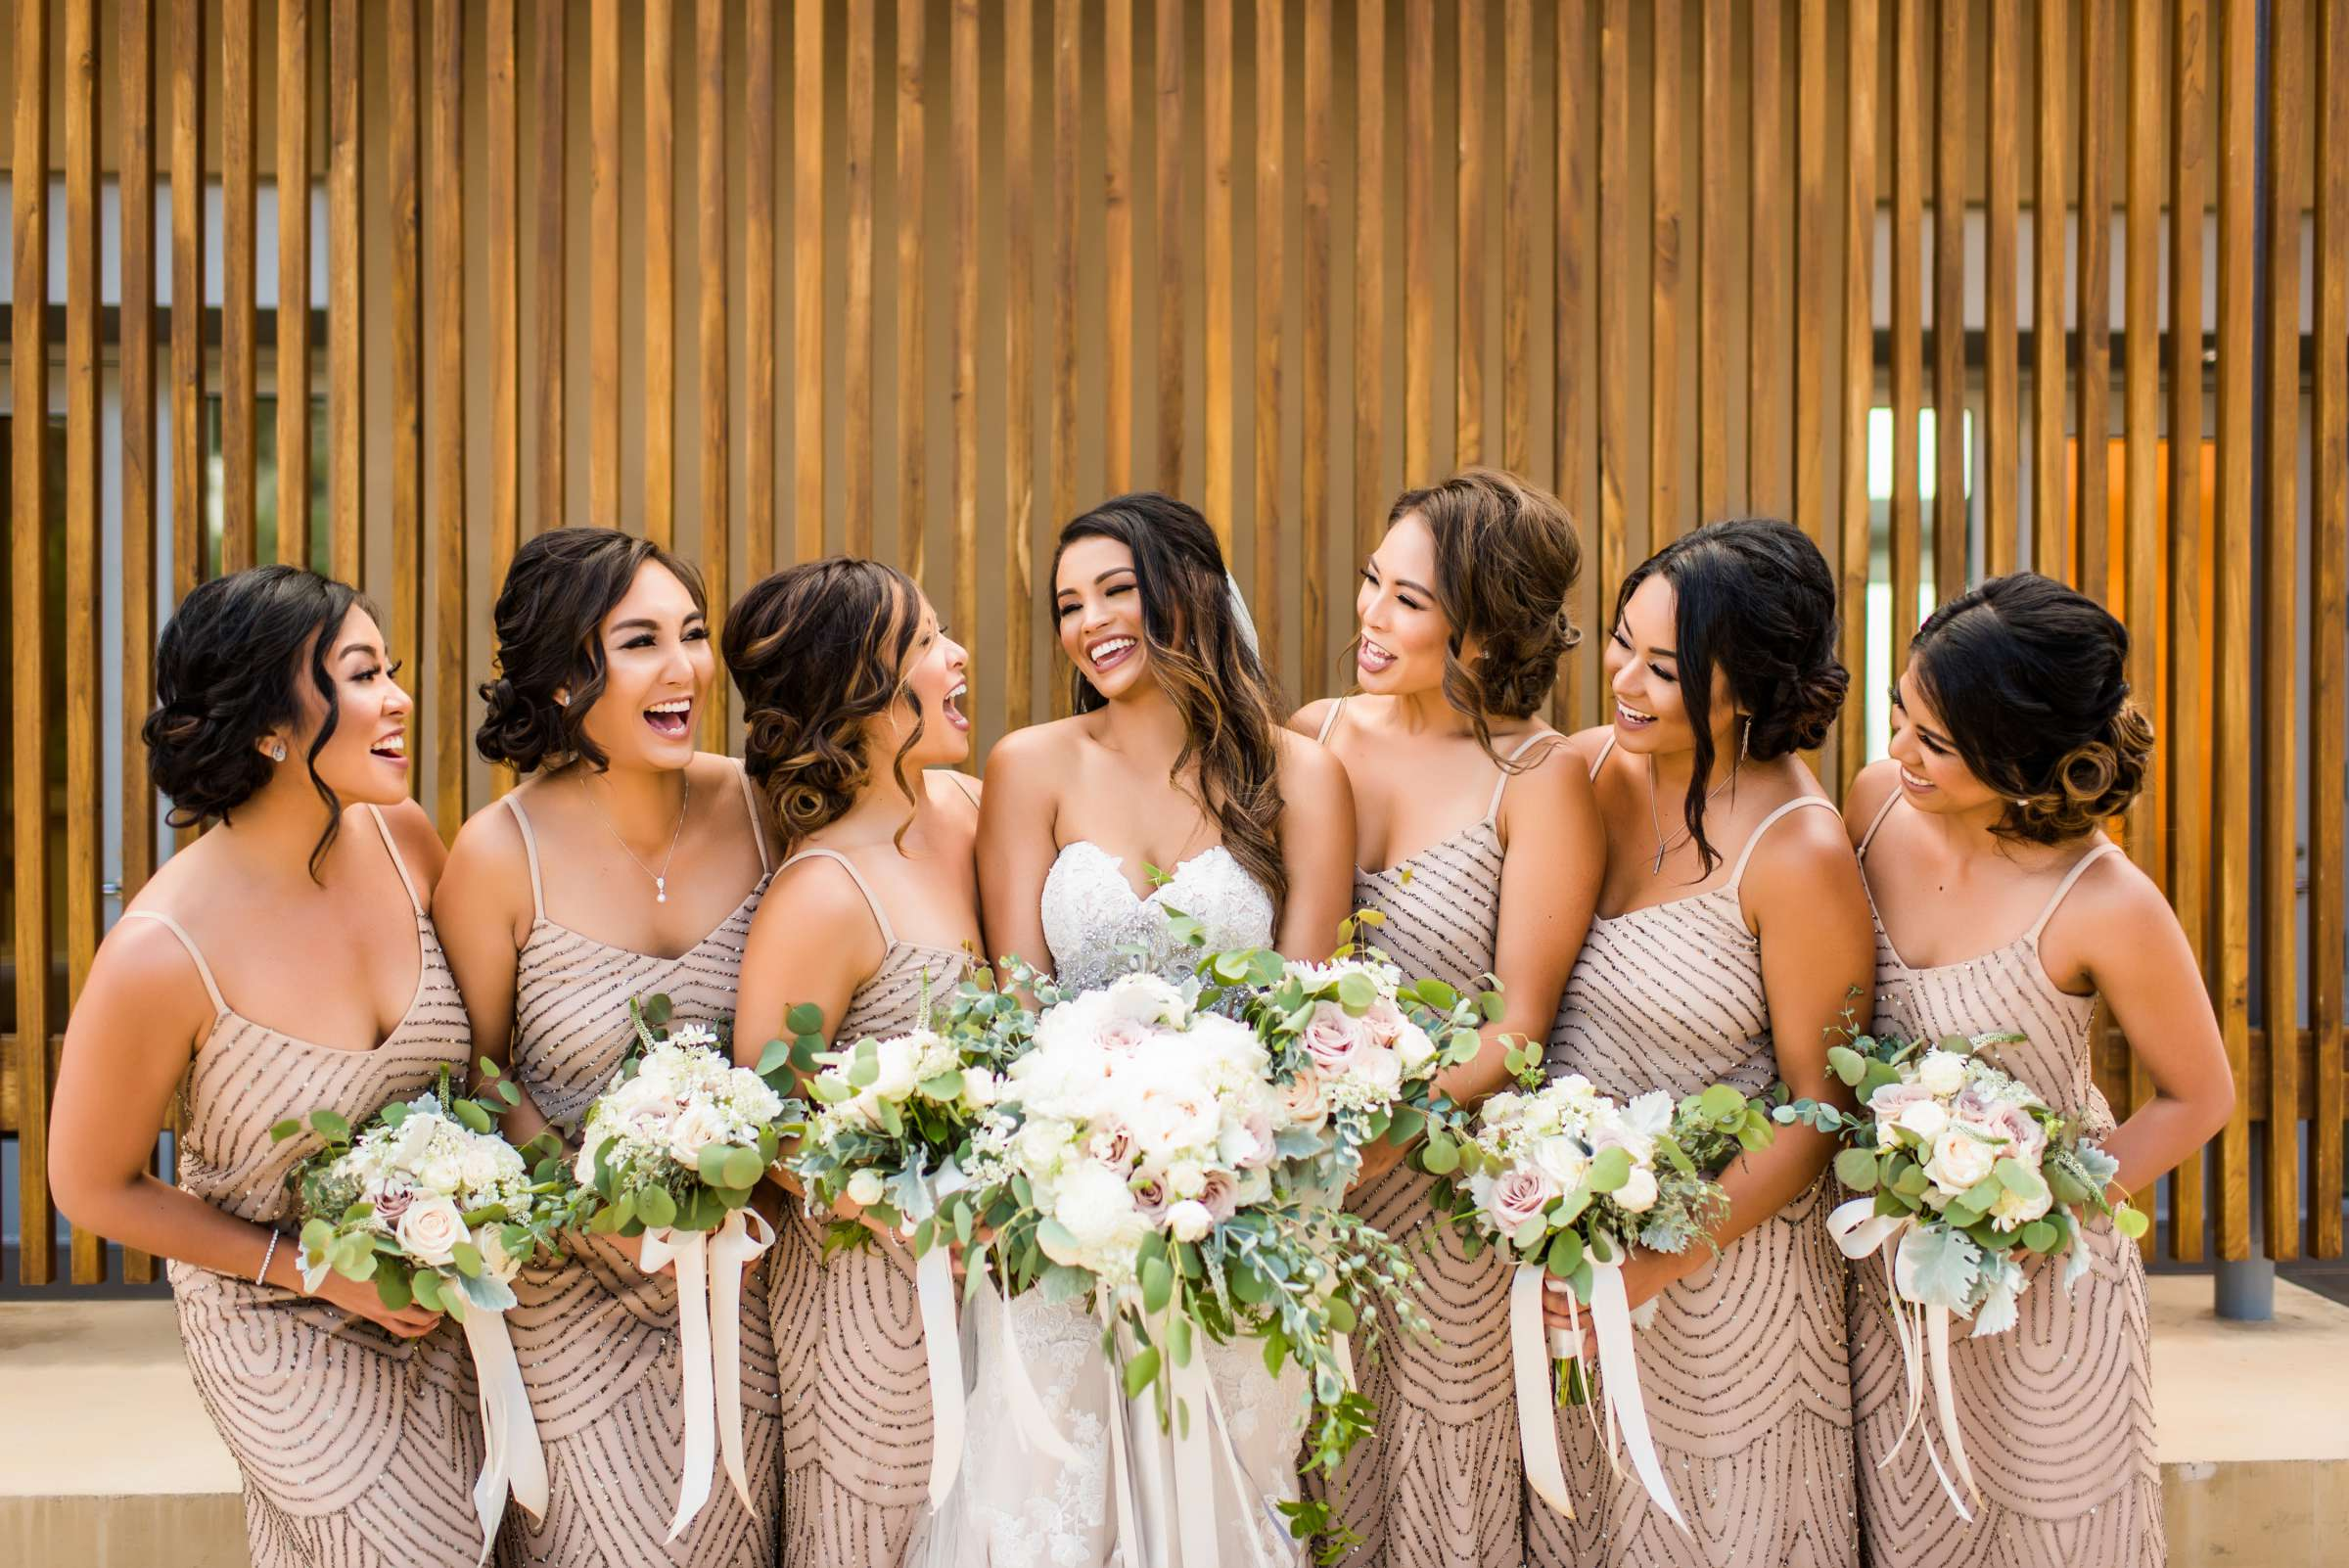 Scripps Seaside Forum Wedding coordinated by Lavish Weddings, Cindy and Justin Wedding Photo #381765 by True Photography